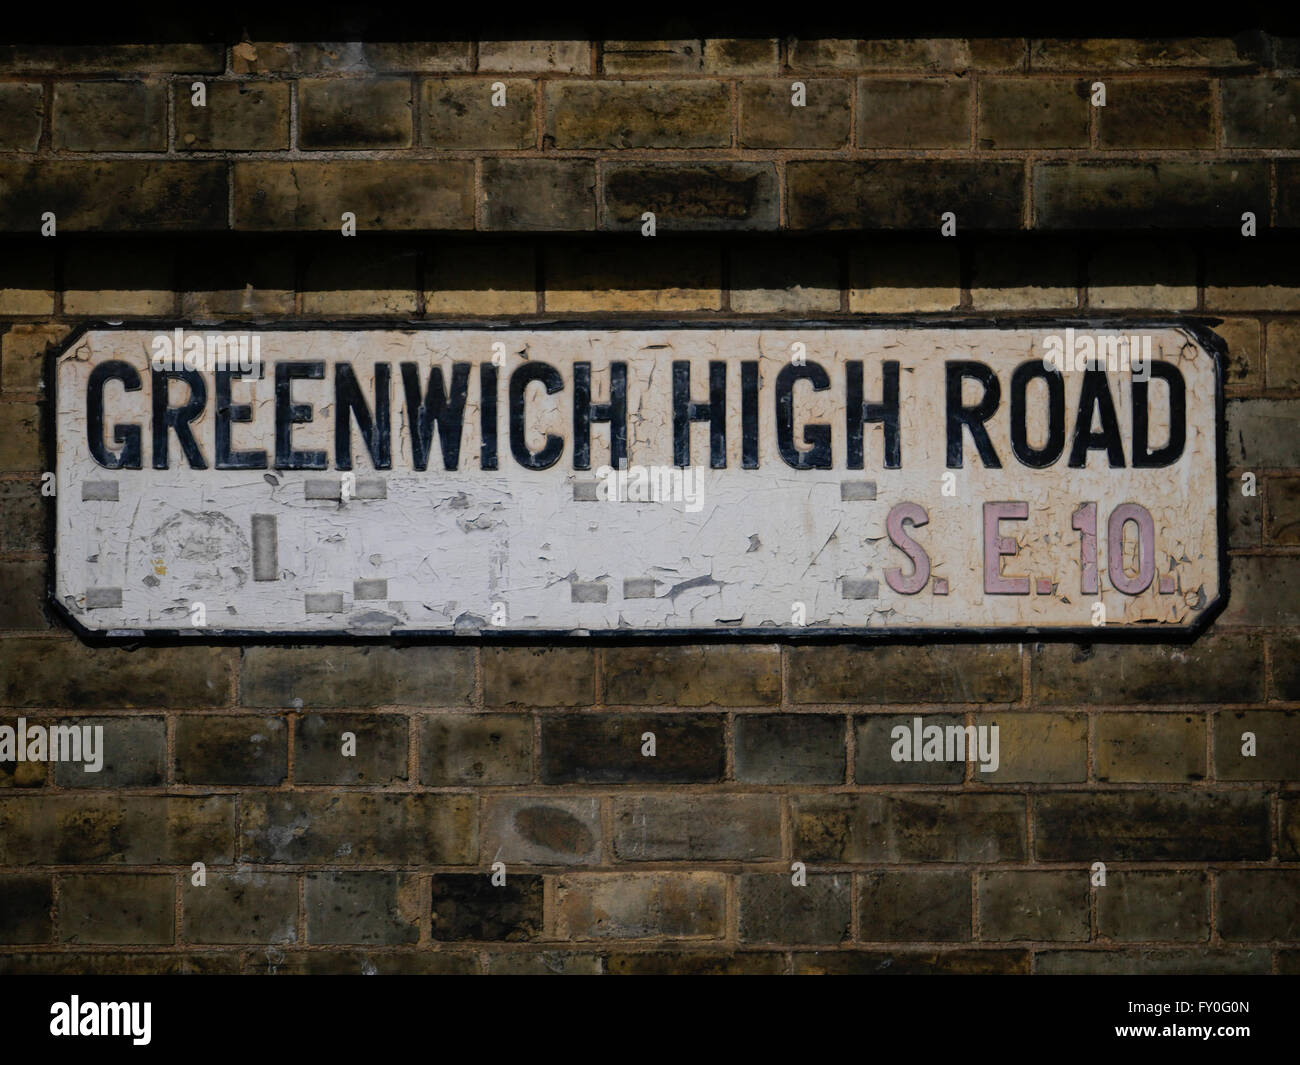 Greenwich High Road Street Sign - Stock Image